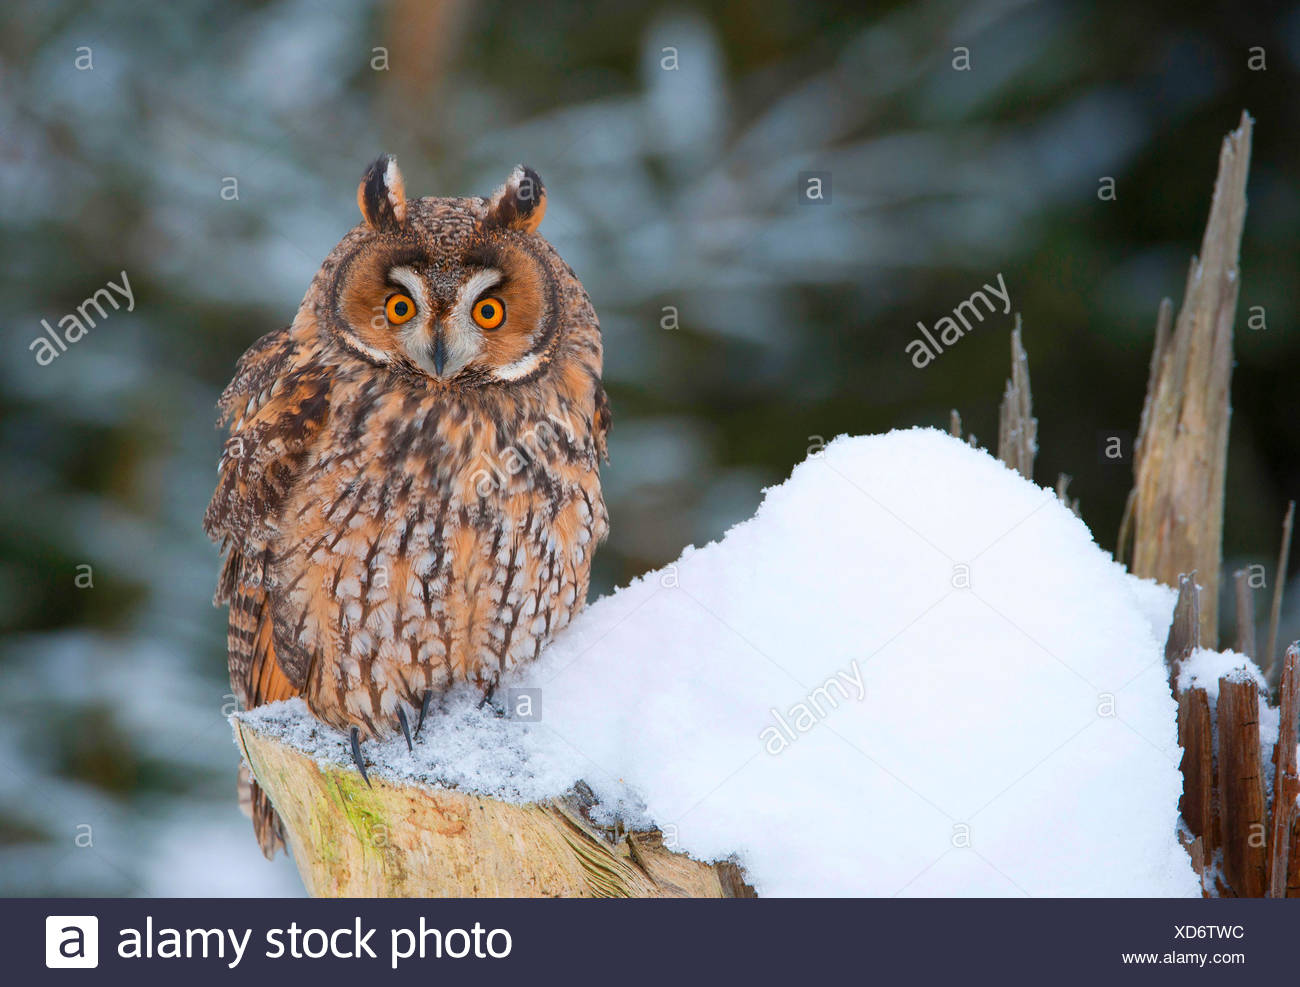 long-eared owl (Asio otus), sitting on a snow-covered tree stump, Germany, Bavaria Stock Photo